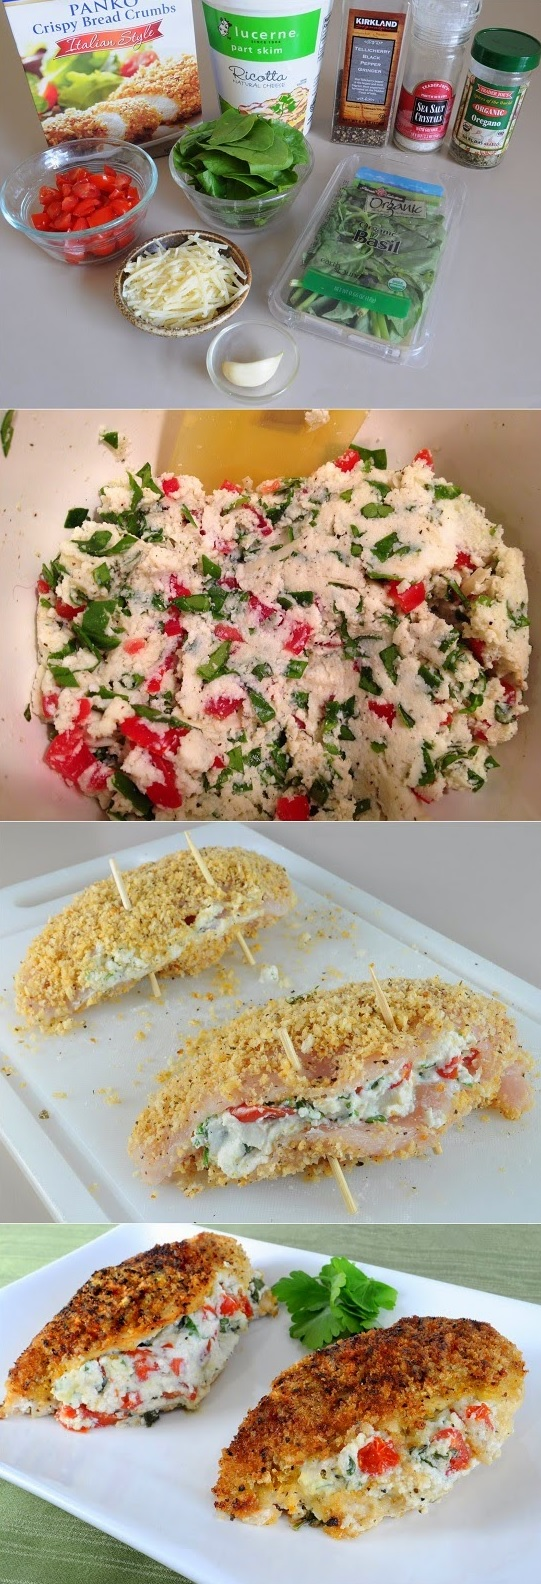 Italian Panko Crusted Stuffed Chicken